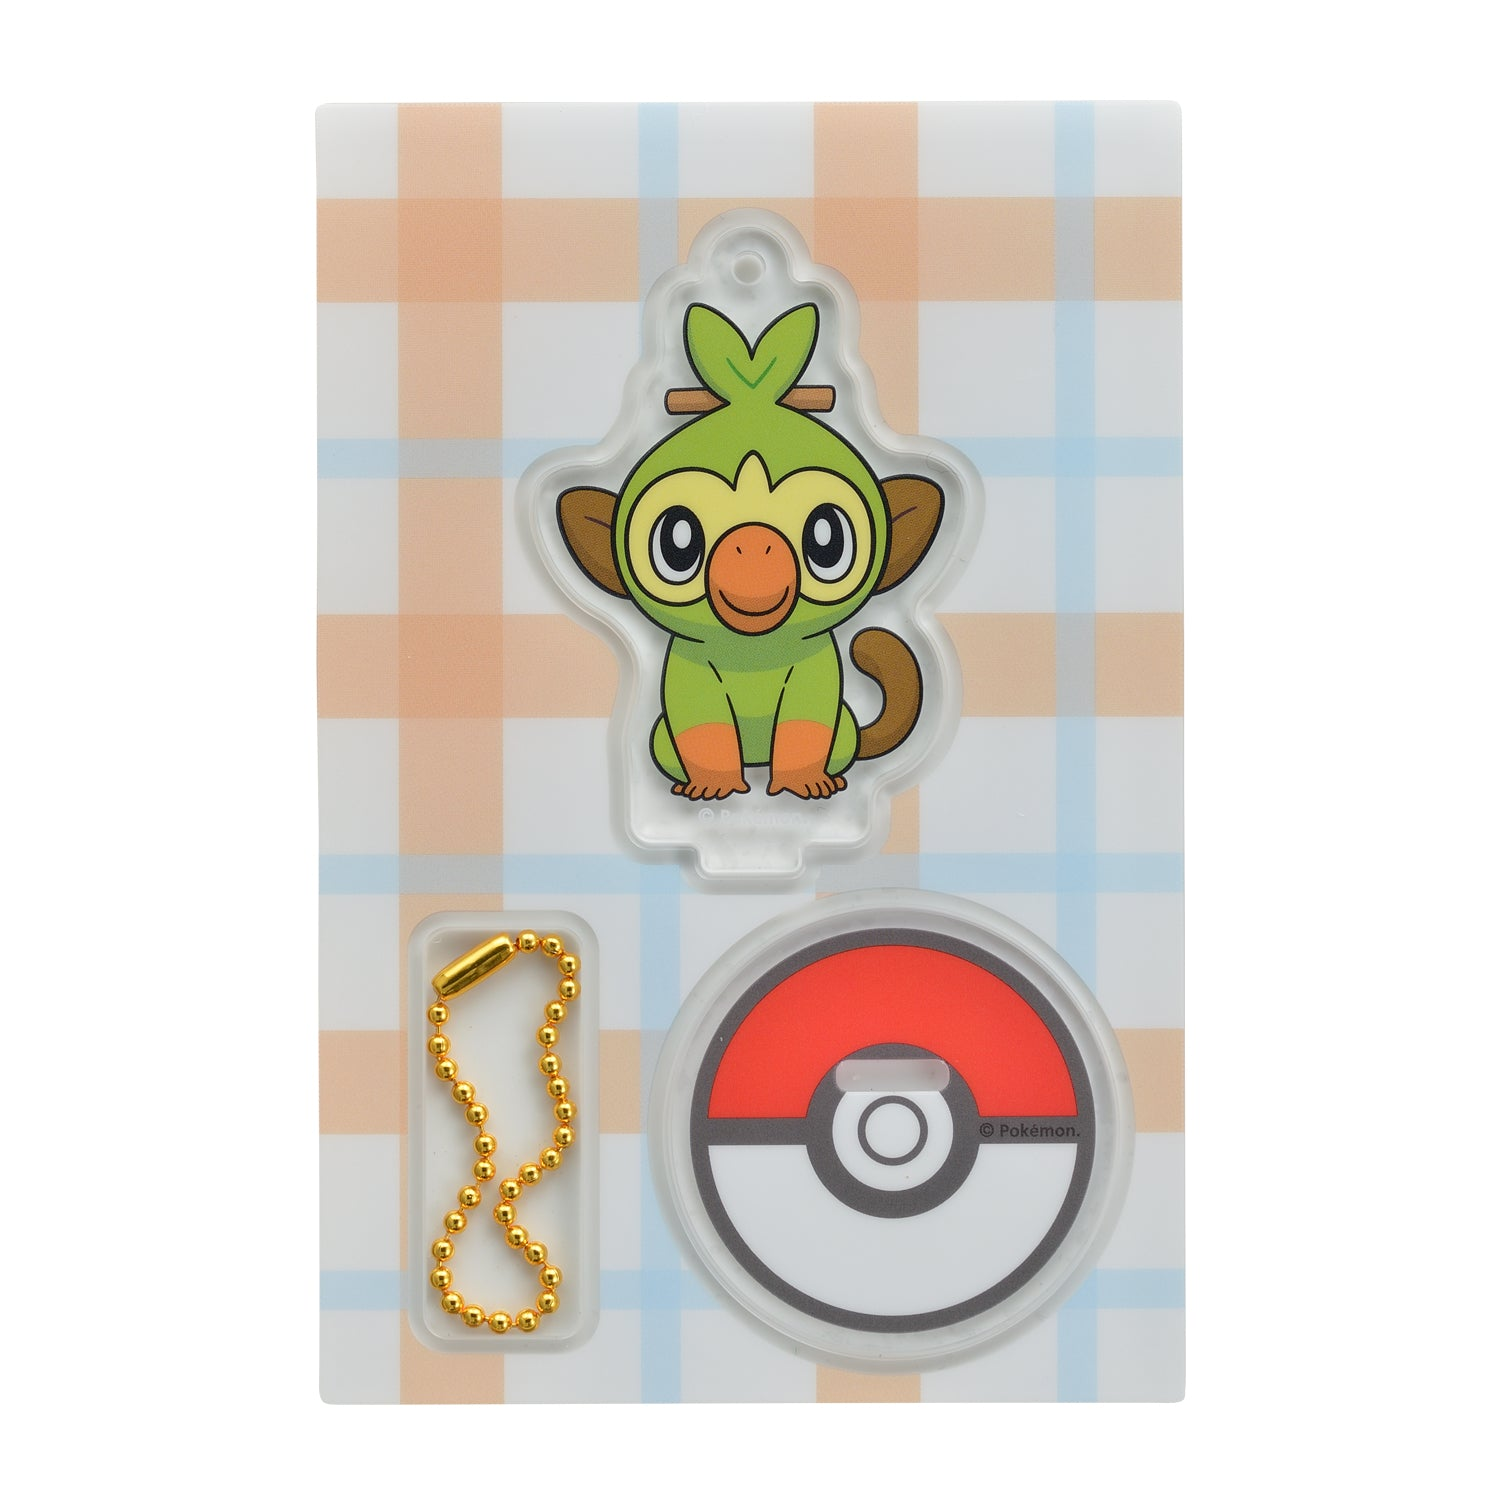 Grookey Sarunori Acrylic Stand Holder Sword Shield Pokemon Center Japa Verygoods Jp Variables are nothing but reserved memory locations. verygoods jp